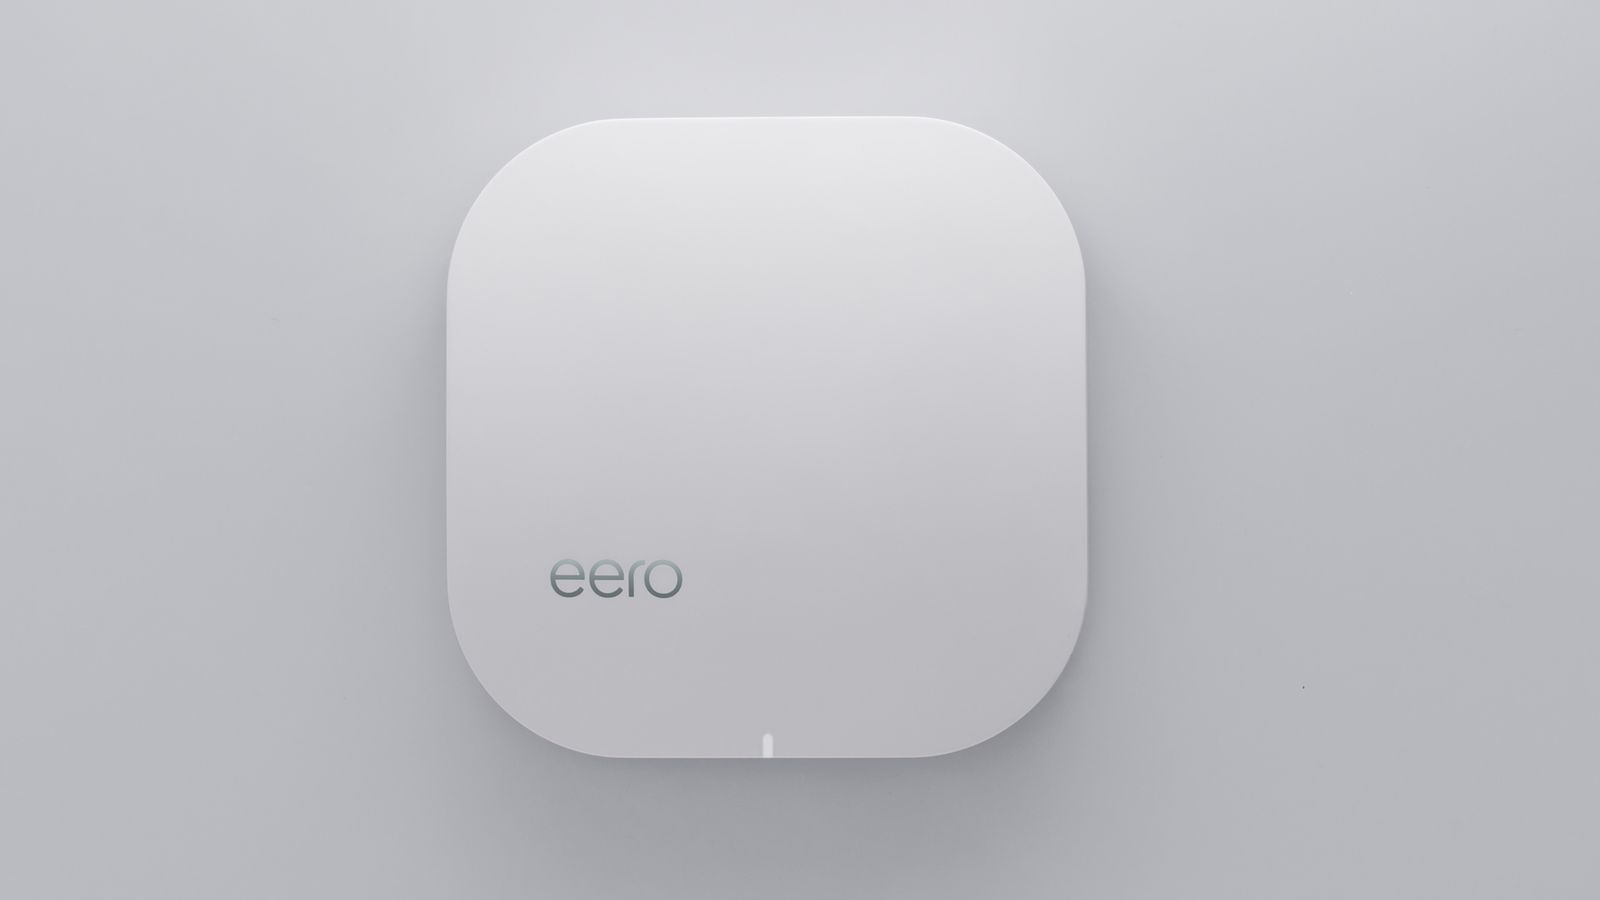 Eero Is A Little White Box That Aims To Change Wi Fi